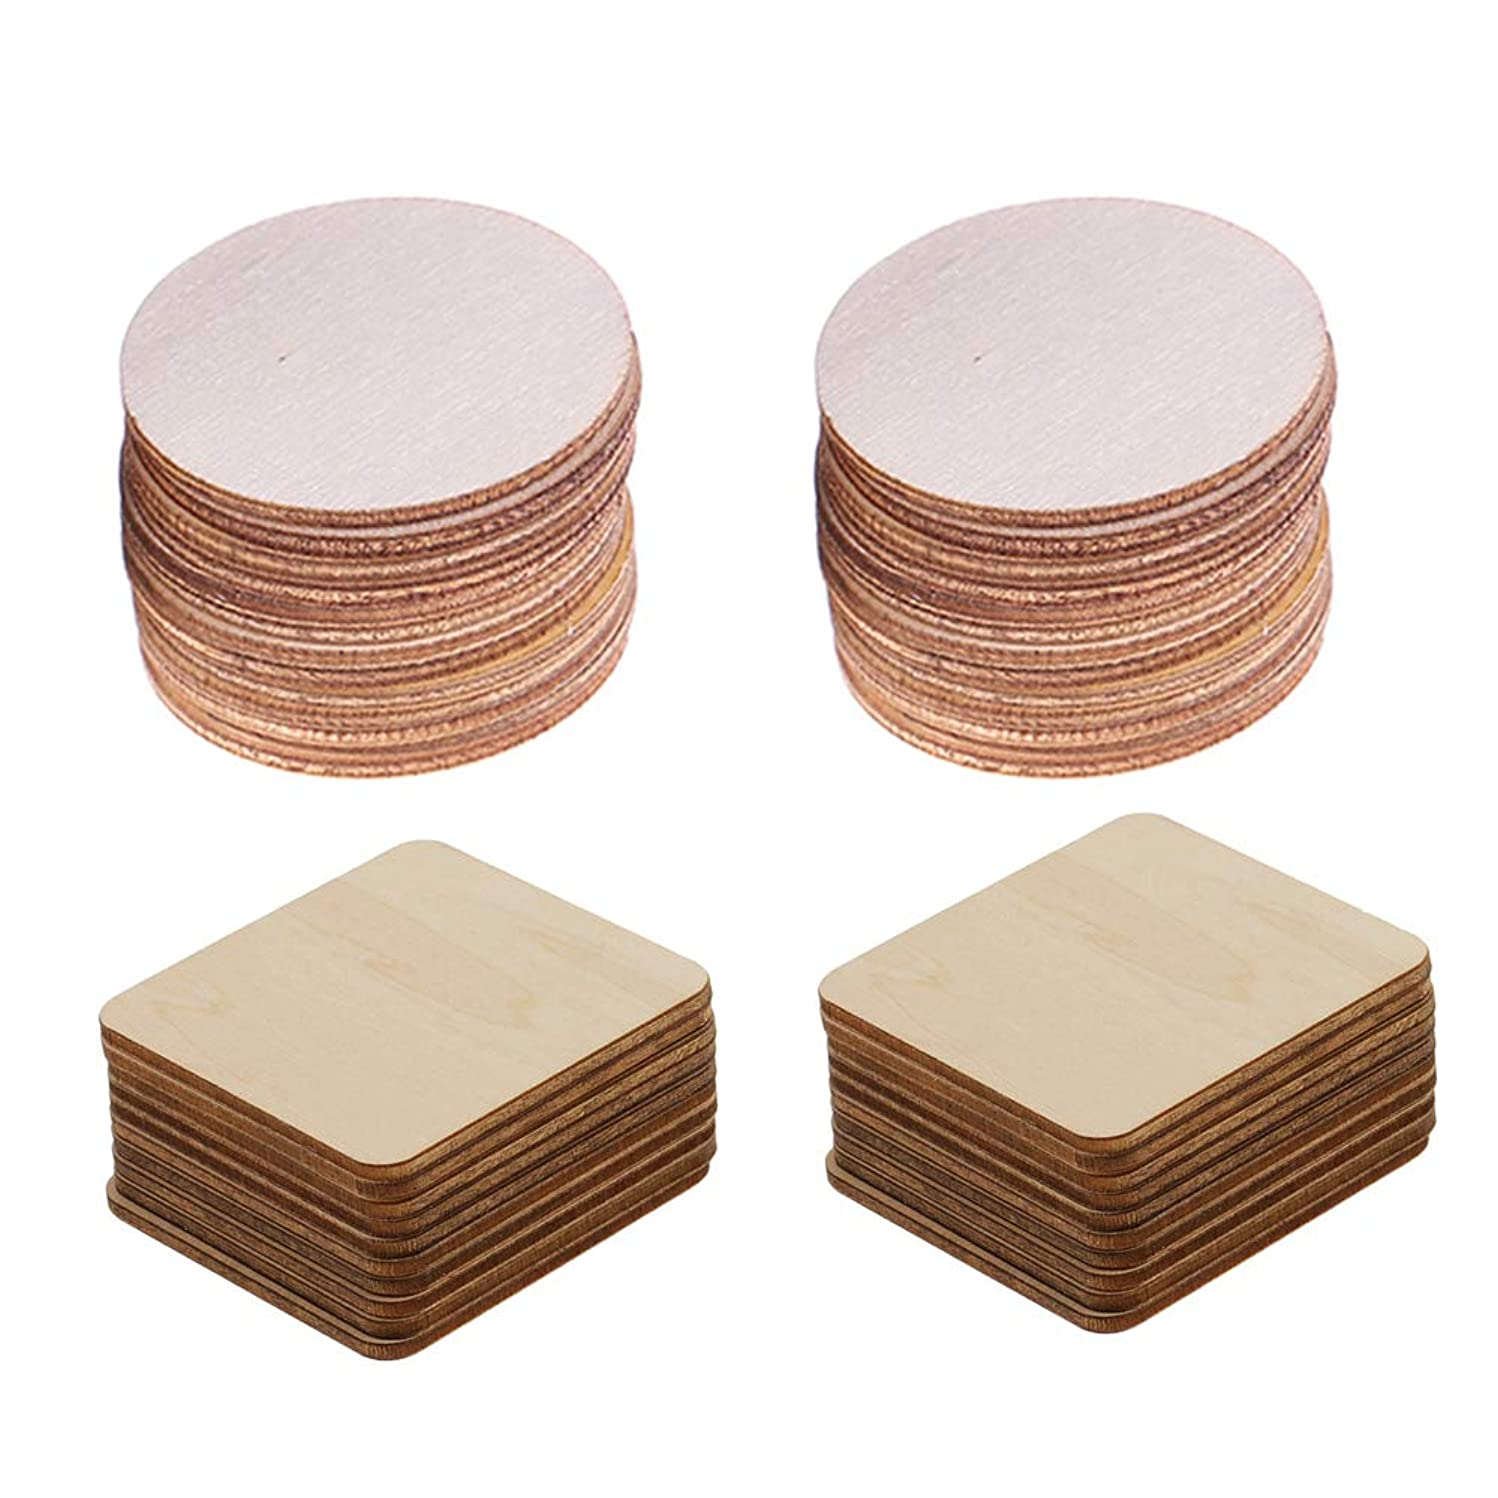 Unfinished Wood Slices Cutout Pieces - 12 Pack Round + 12 Pack Square Natural Rustic Wood Ornaments Crafts Plaques Tiles for Wood Coasters,DIY Arts Craft Supplies,Home Christmas Decoration,4 x 4 inch,Thickness 1/8 inch